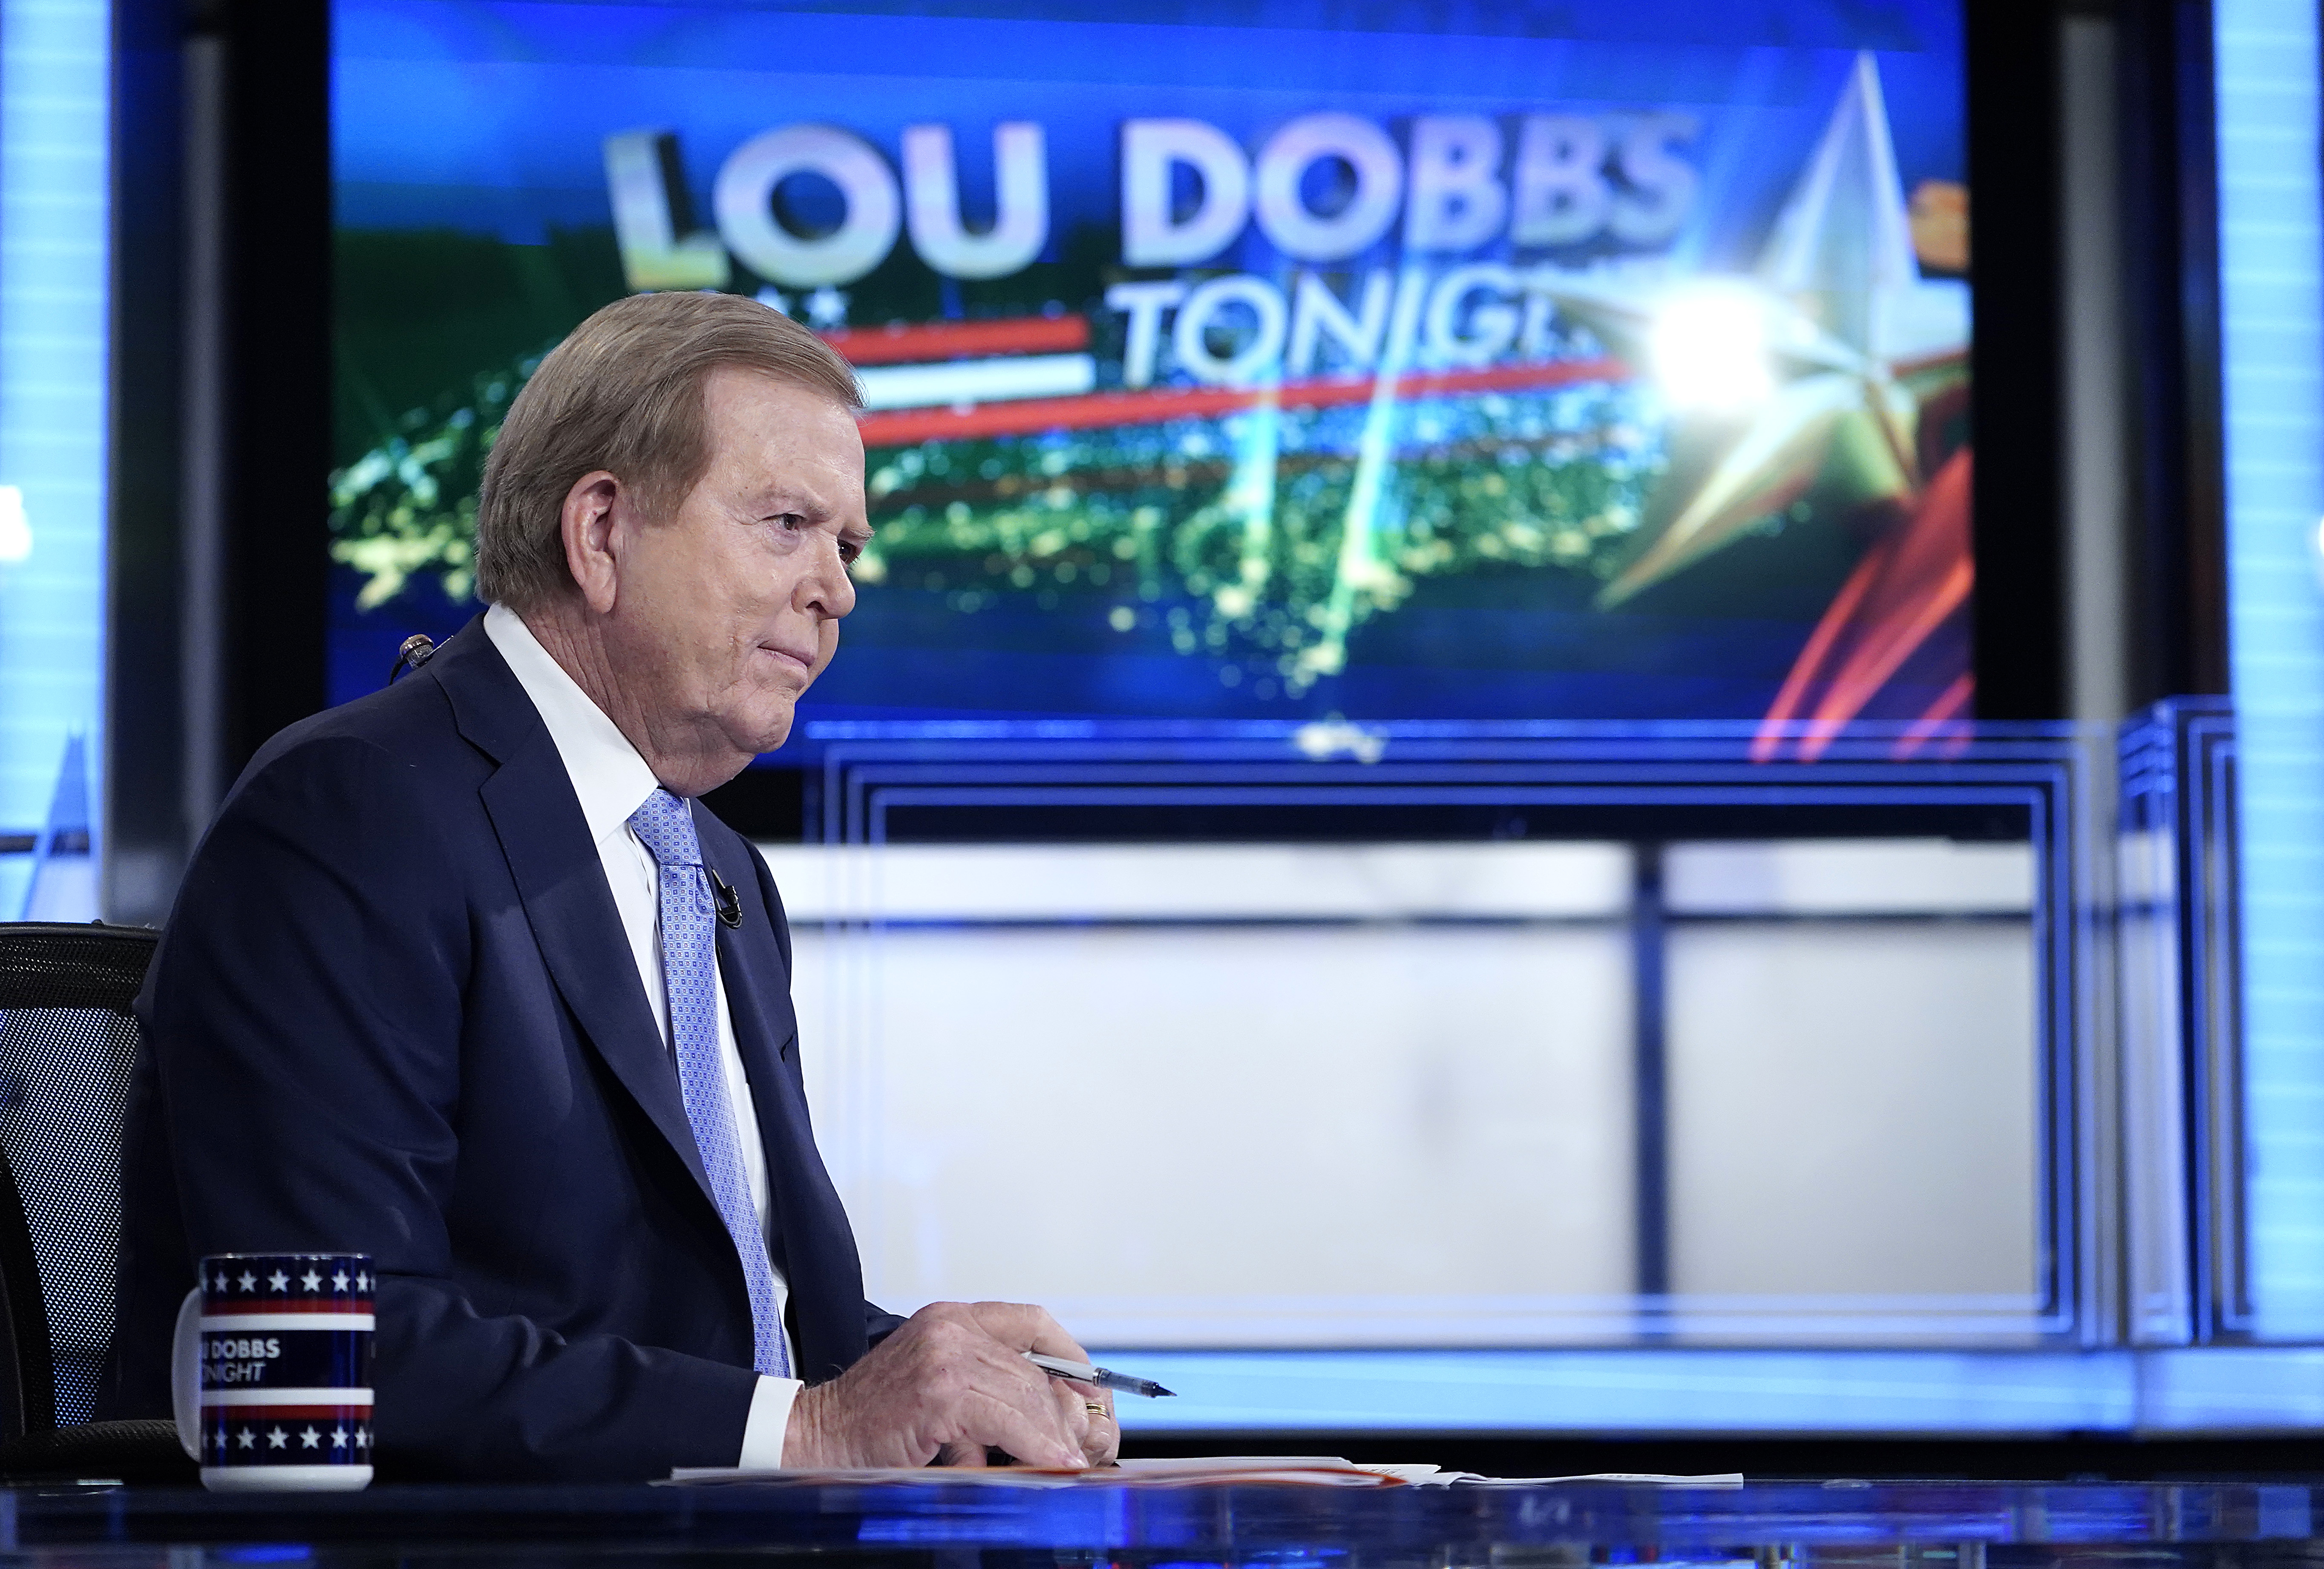 """Dobbs, in a navy suit, white shirt, and blue tie, his brown and gray hair swept back, sits at a desk in front of a screen that says in bold letters, """"Lou Dobbs Tonight."""""""